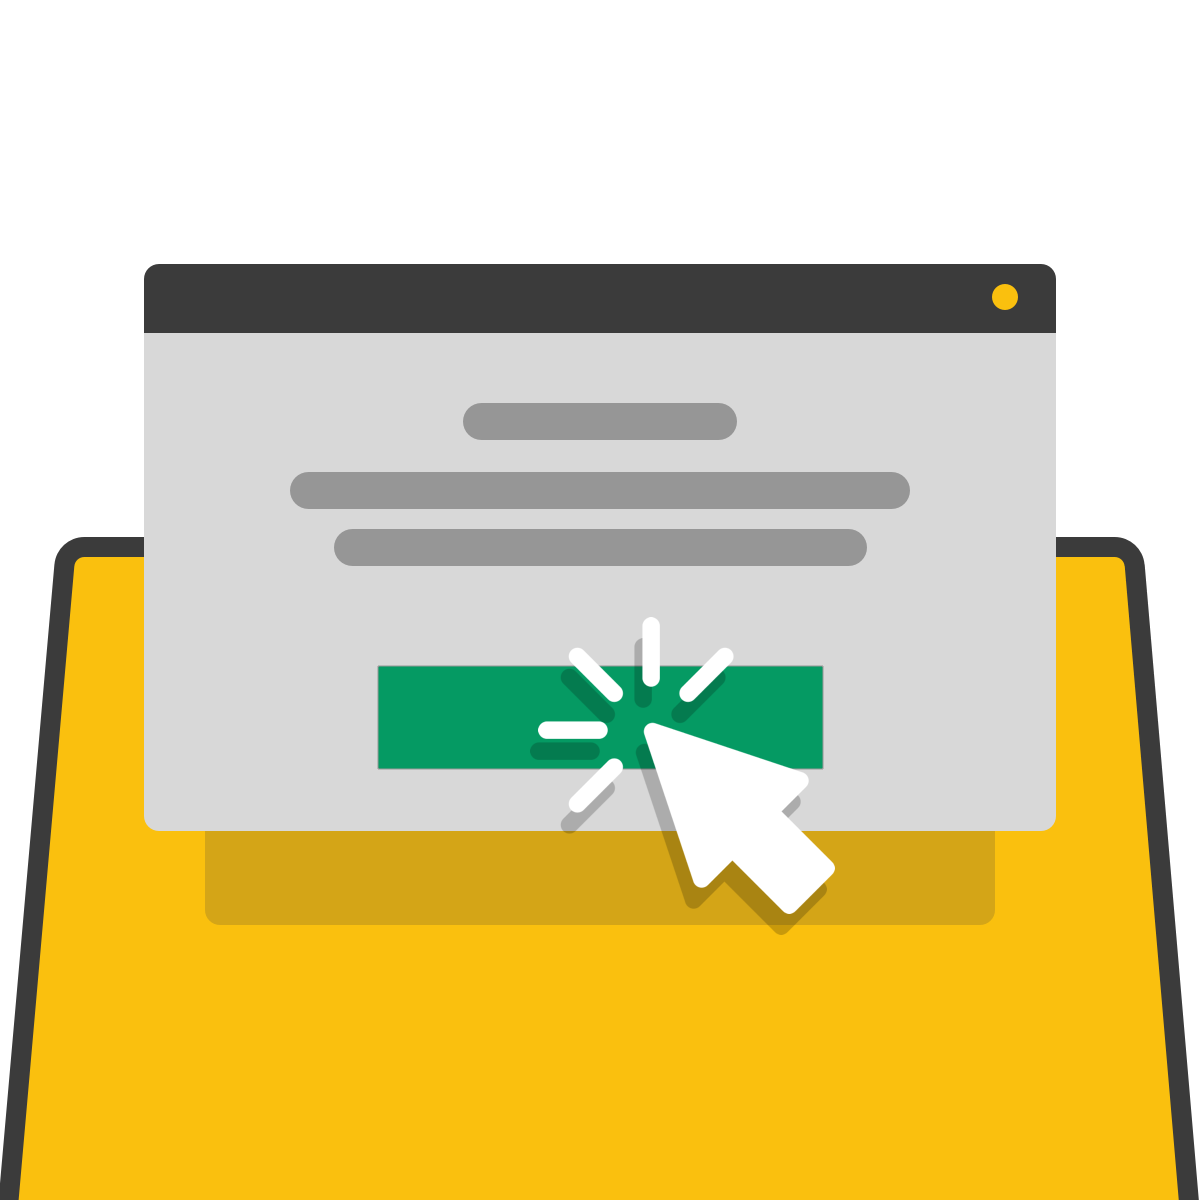 Shopify Email Apps by Chated.io